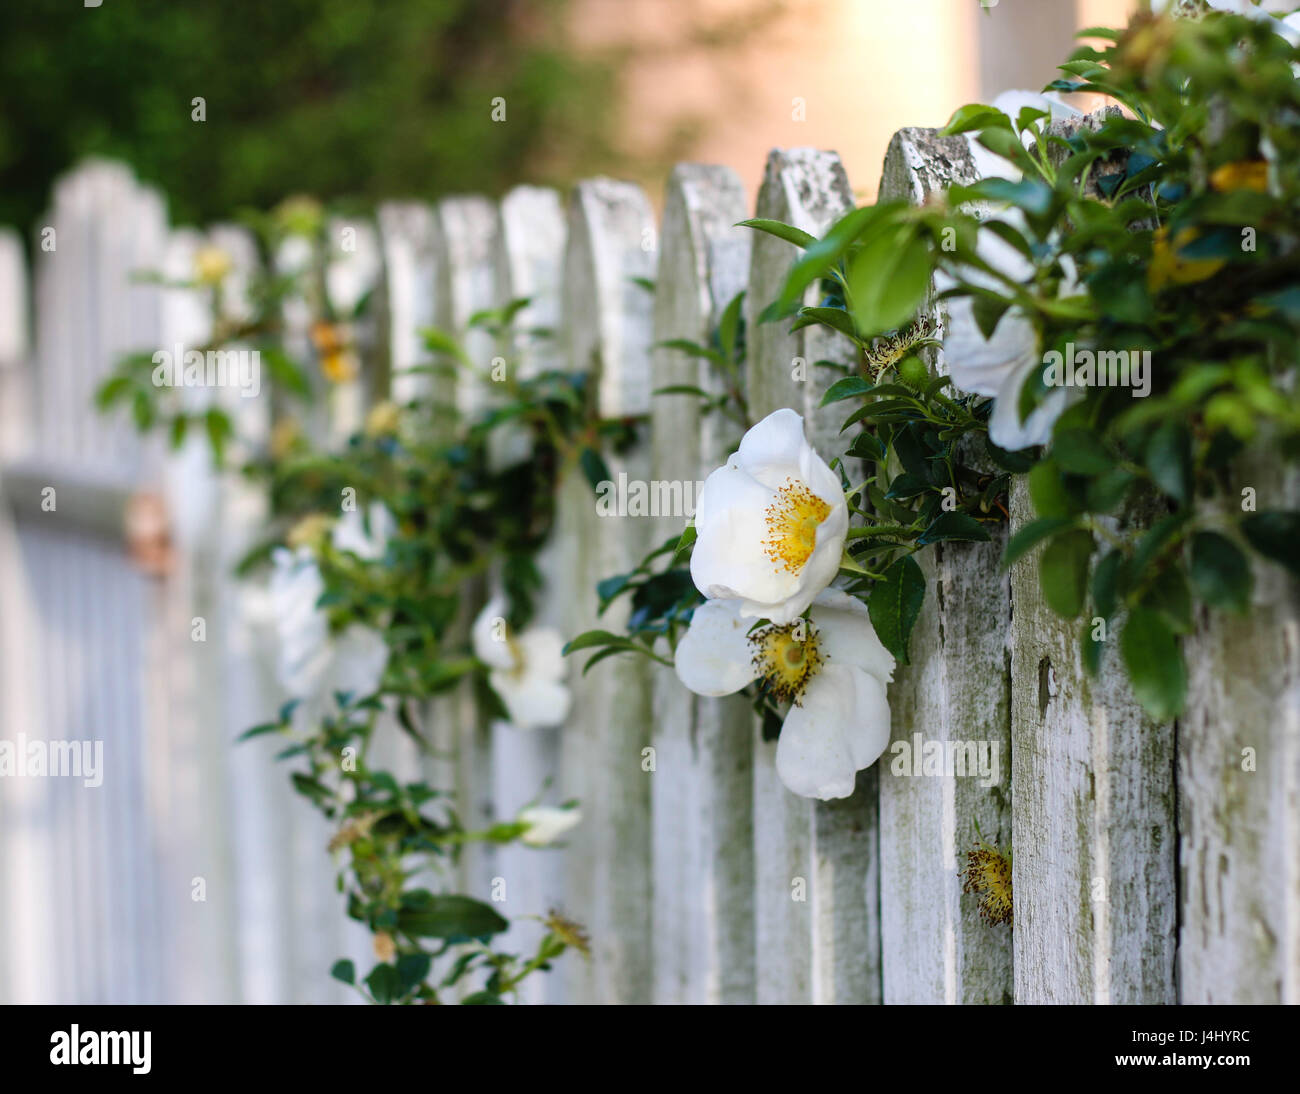 White flowers and vine on white picket fence stock photo 140536576 white flowers and vine on white picket fence mightylinksfo